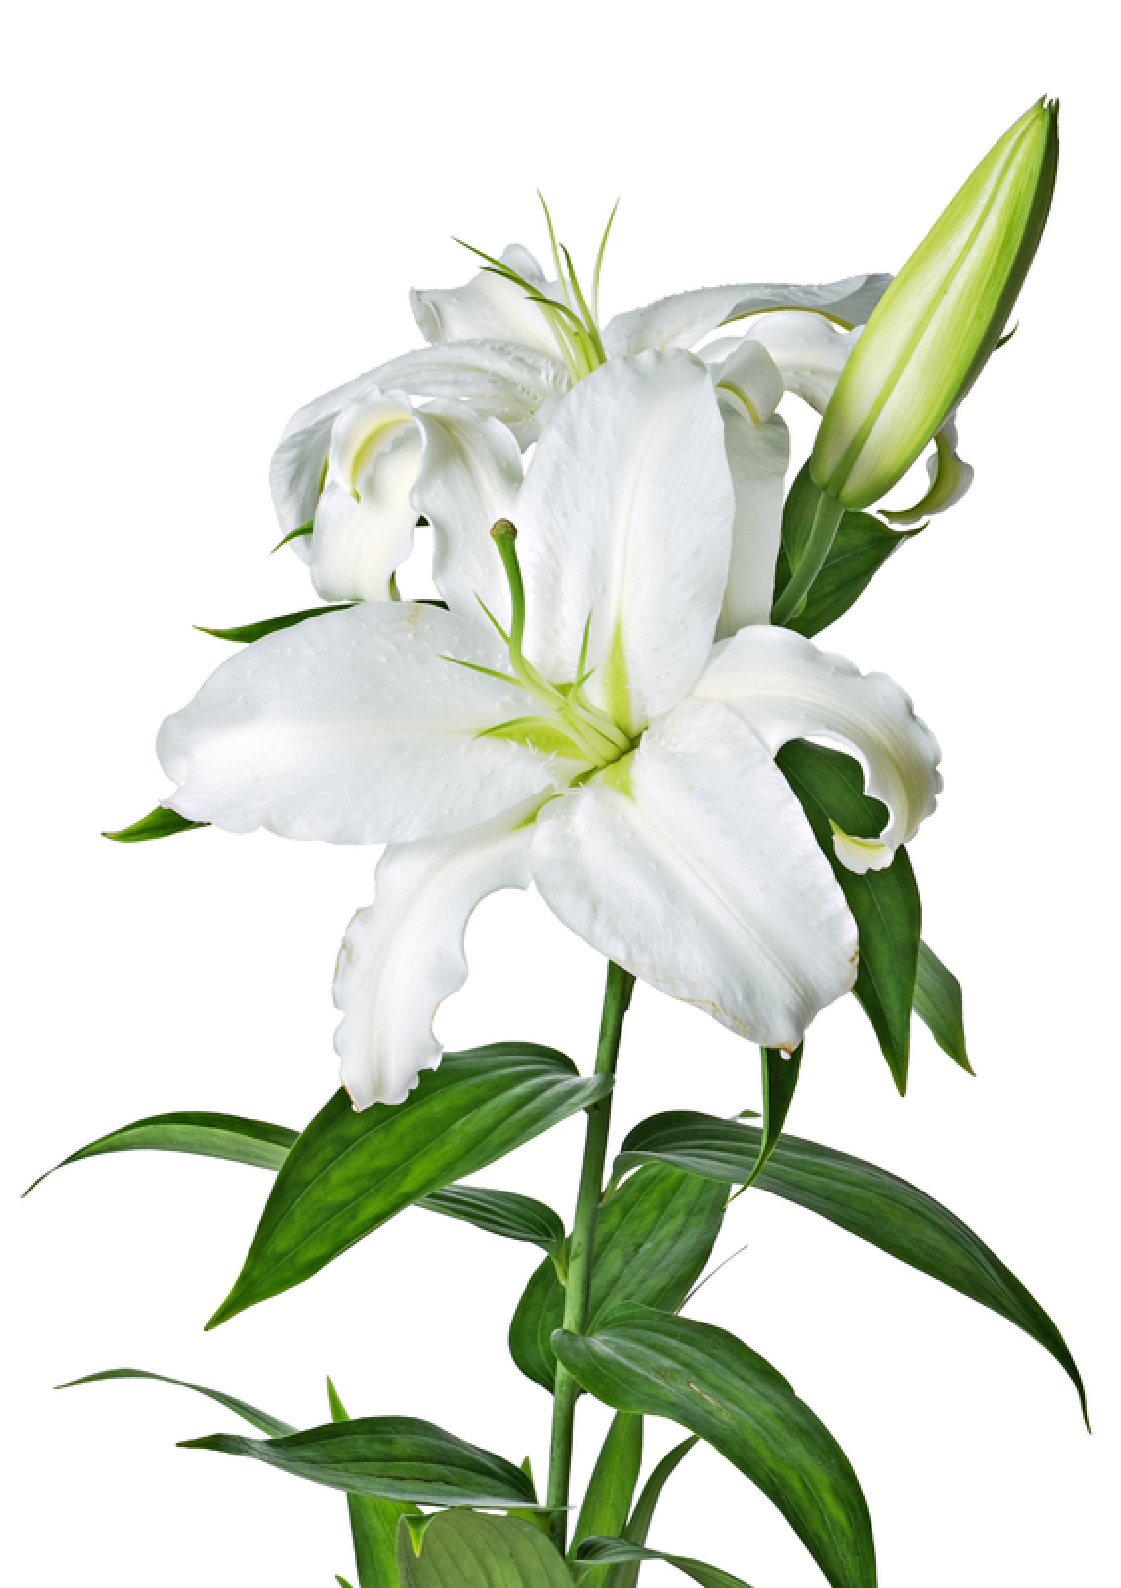 Easter lilies group flower. Funeral clipart funeral program